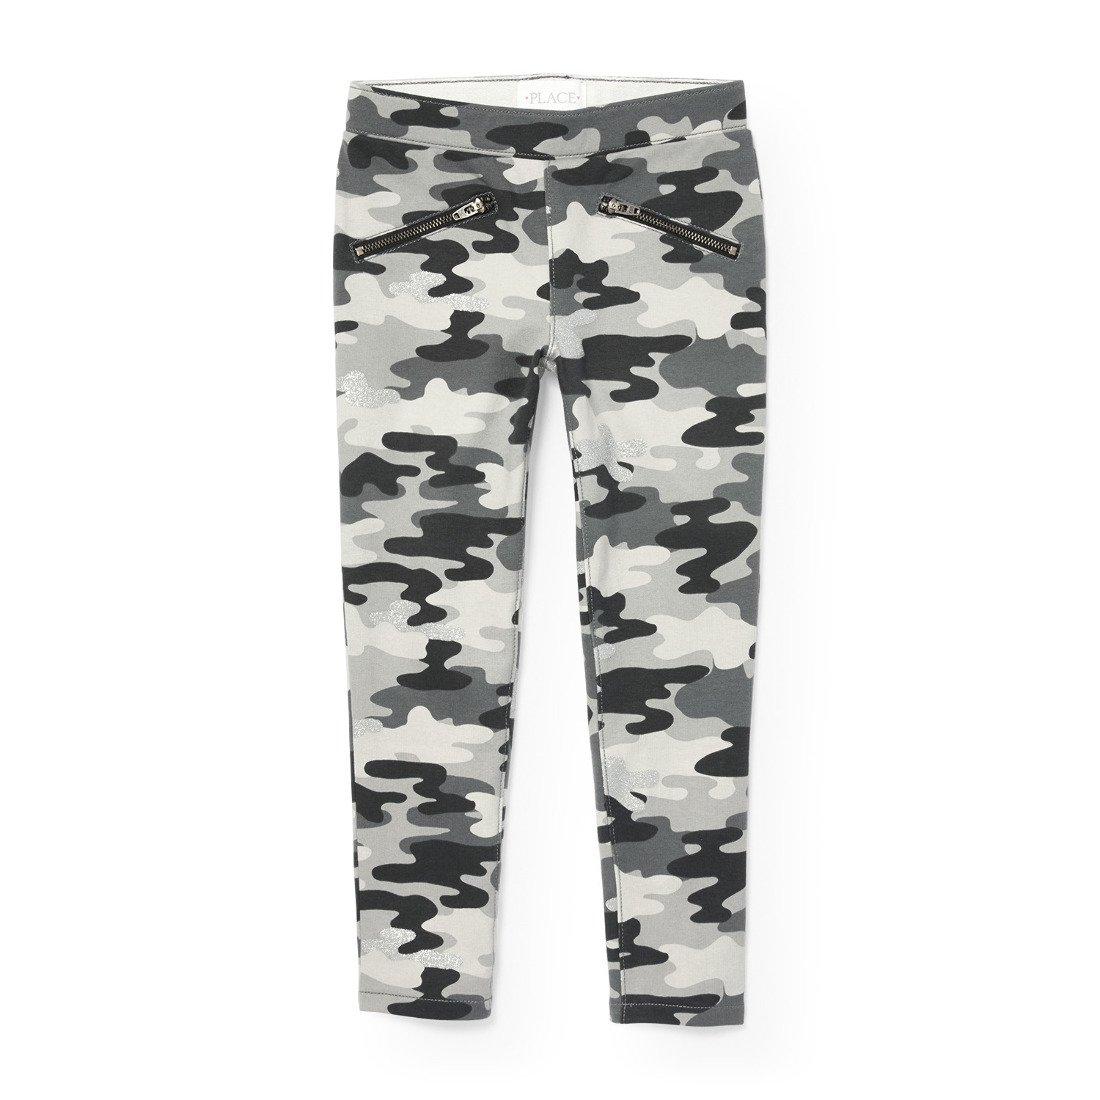 The Children's Place Girls Camoflauge Knit Jegging, Storm 90829, 4